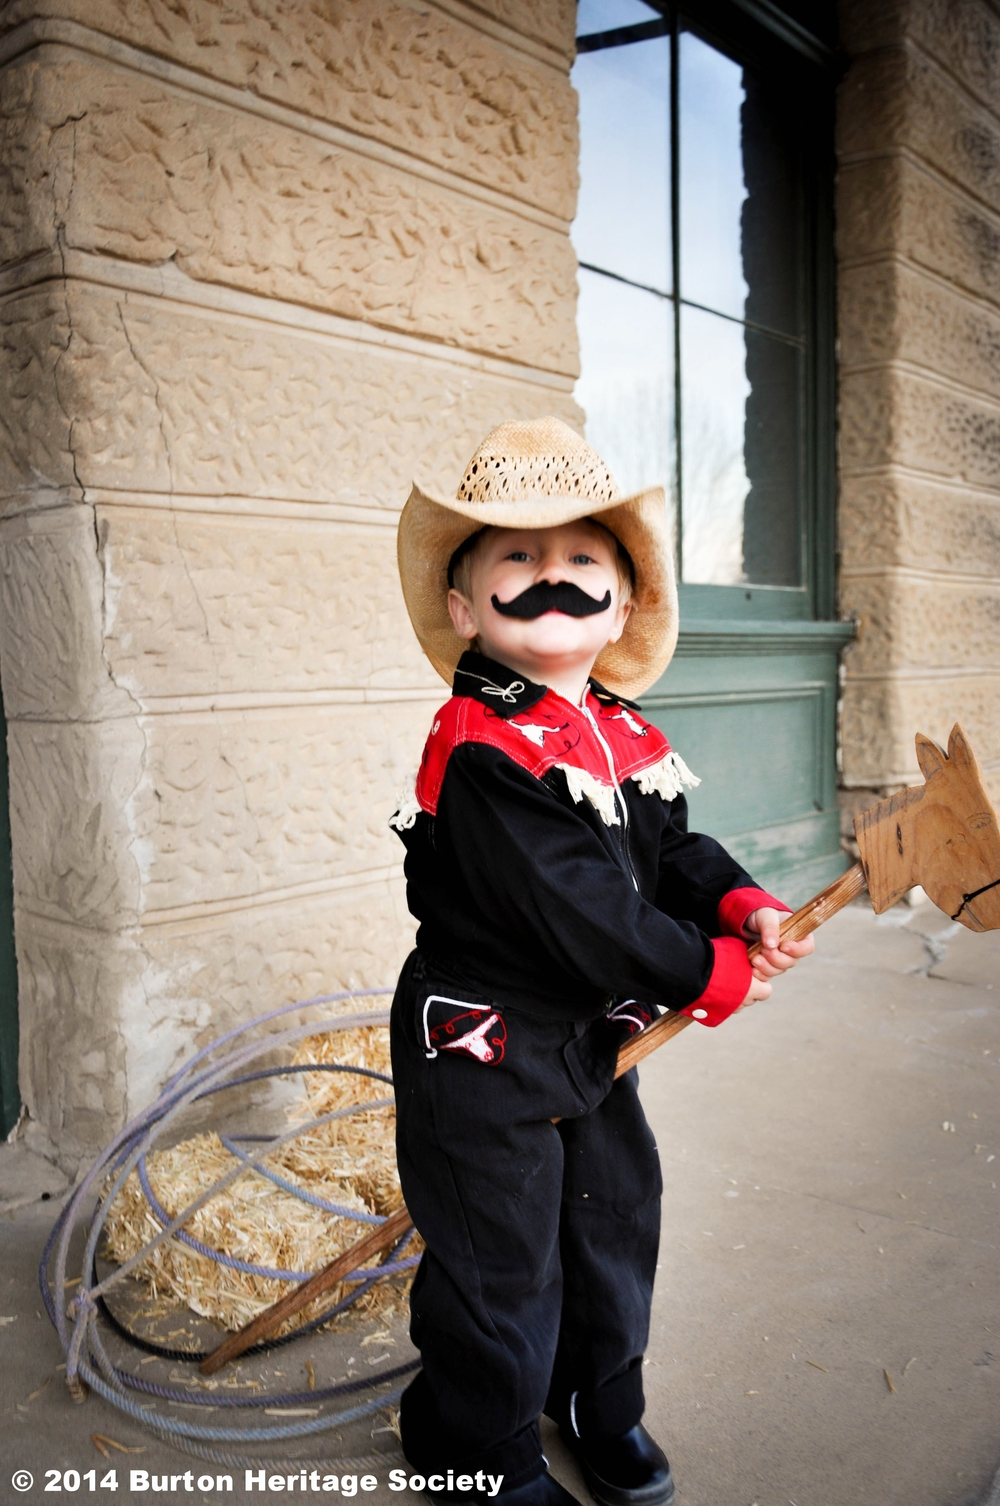 At Texas Ranger Day 2016 we had our first Lil' Mr & Miss Contest. Kiddos dressed up in their best cowboy and cowgirl outfits to show their Texas Ranger spirit and won a prize!